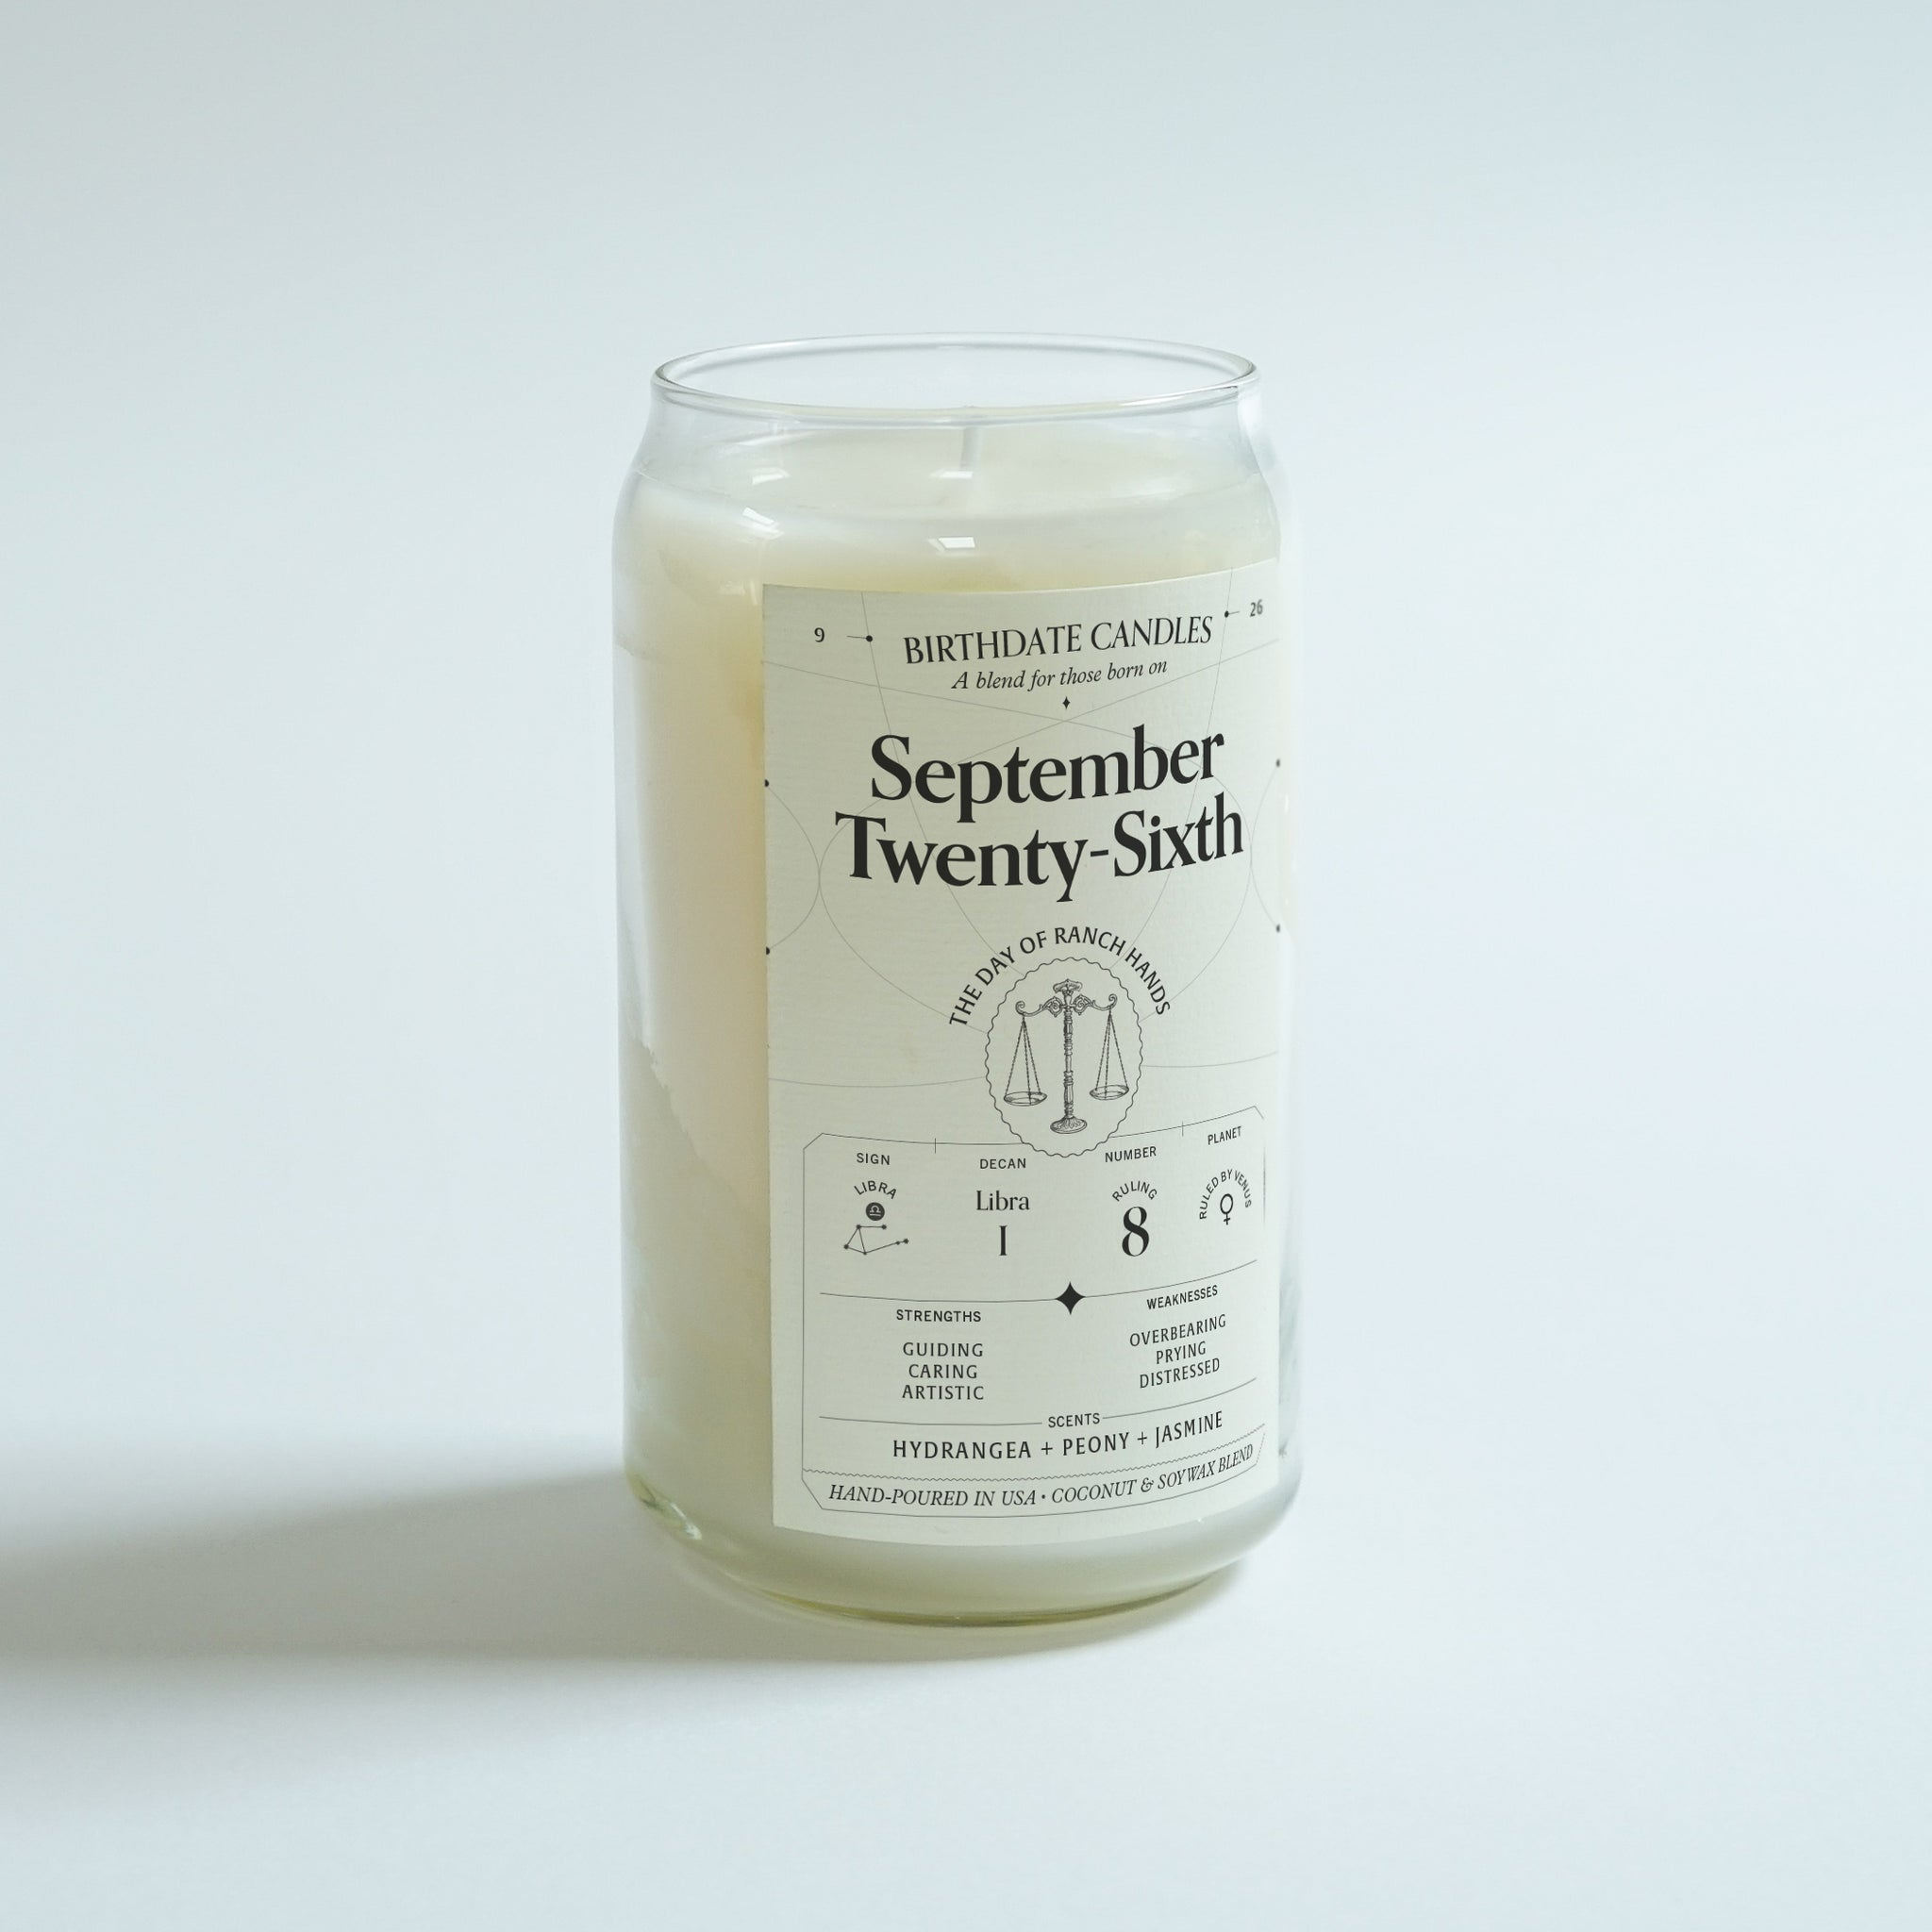 The September Twenty-Sixth Birthday Candle